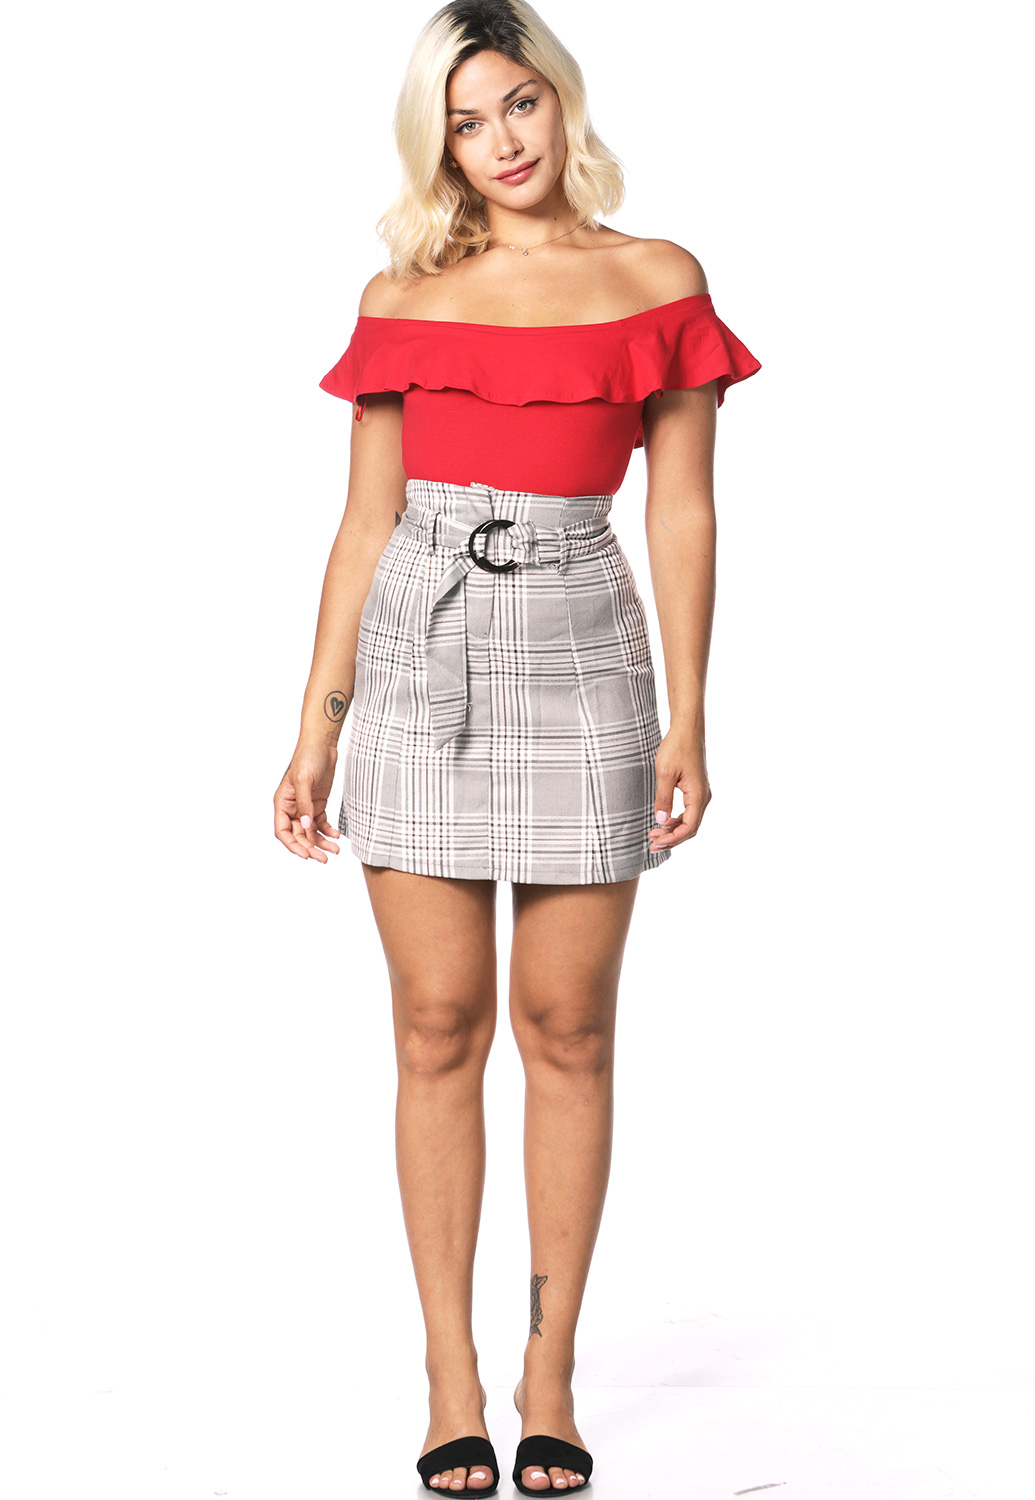 Glen Plaid Dressy Skirt